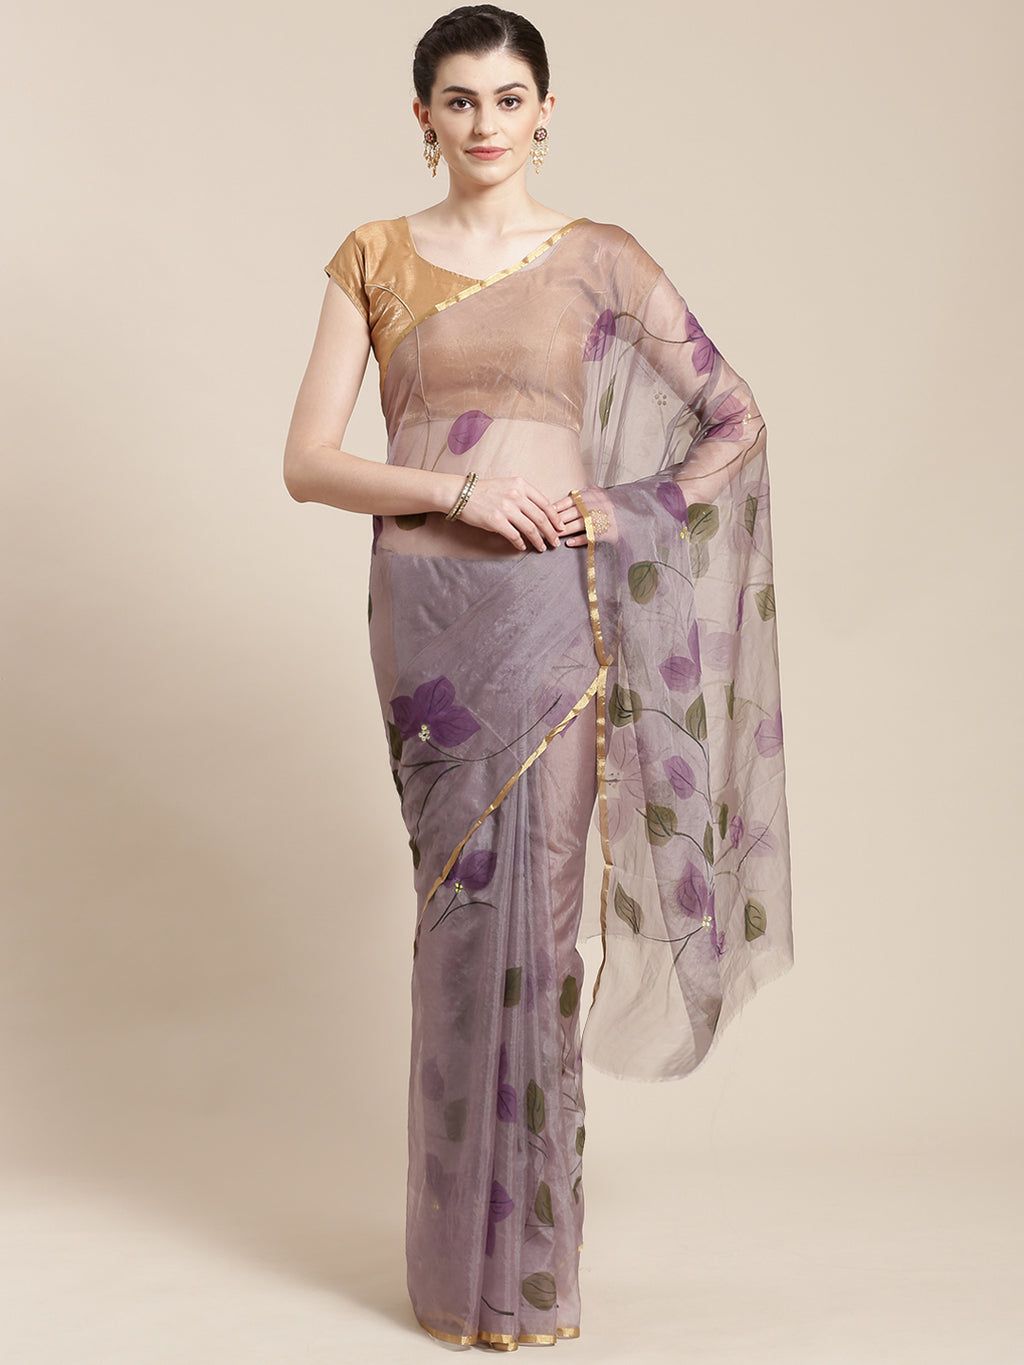 Purple & Olive Green Hand Painted Organza Saree-Saree-Kalakari India-BHKPSA0131-Hand Painted, Organza, Sarees, Sustainable Fabrics, Traditional Weave-[Linen,Ethnic,wear,Fashionista,Handloom,Handicraft,Indigo,blockprint,block,print,Cotton,Chanderi,Blue, latest,classy,party,bollywood,trendy,summer,style,traditional,formal,elegant,unique,style,hand,block,print, dabu,booti,gift,present,glamorous,affordable,collectible,Sari,Saree,printed, holi, Diwali, birthday, anniversary, sustainable, organic, sca